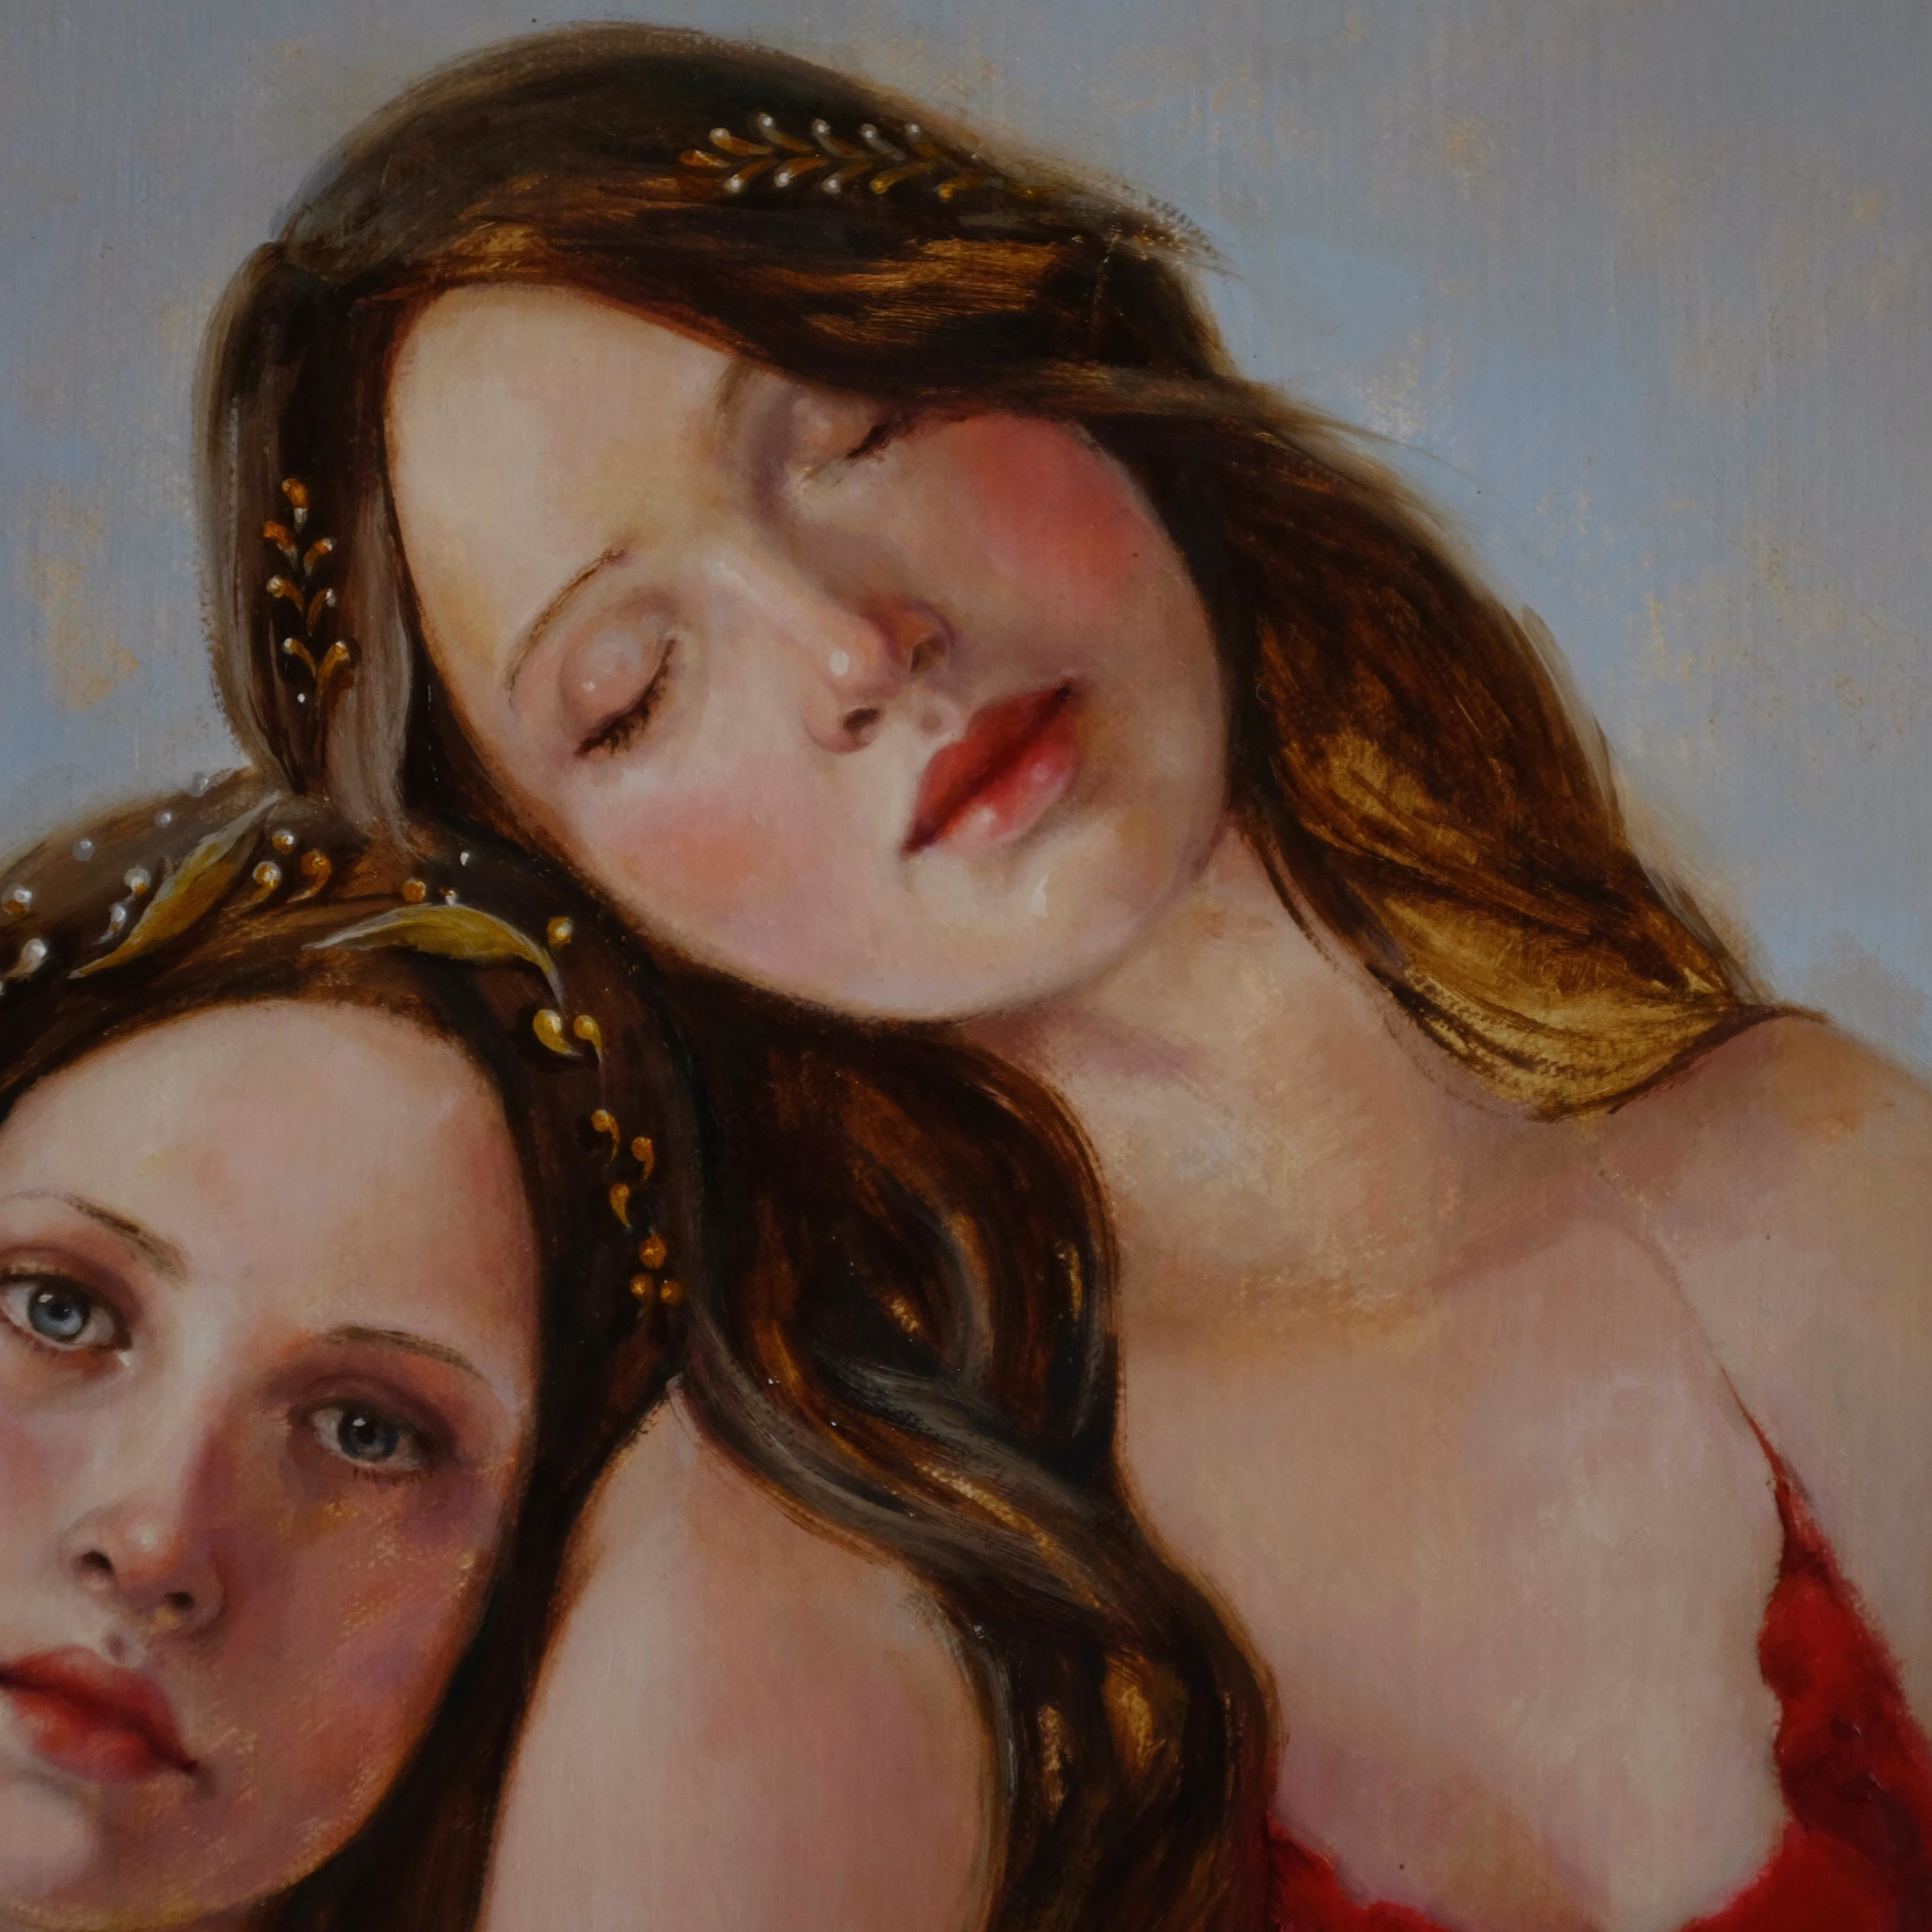 Face 2 detail of Neptune's Daughters by Soraya